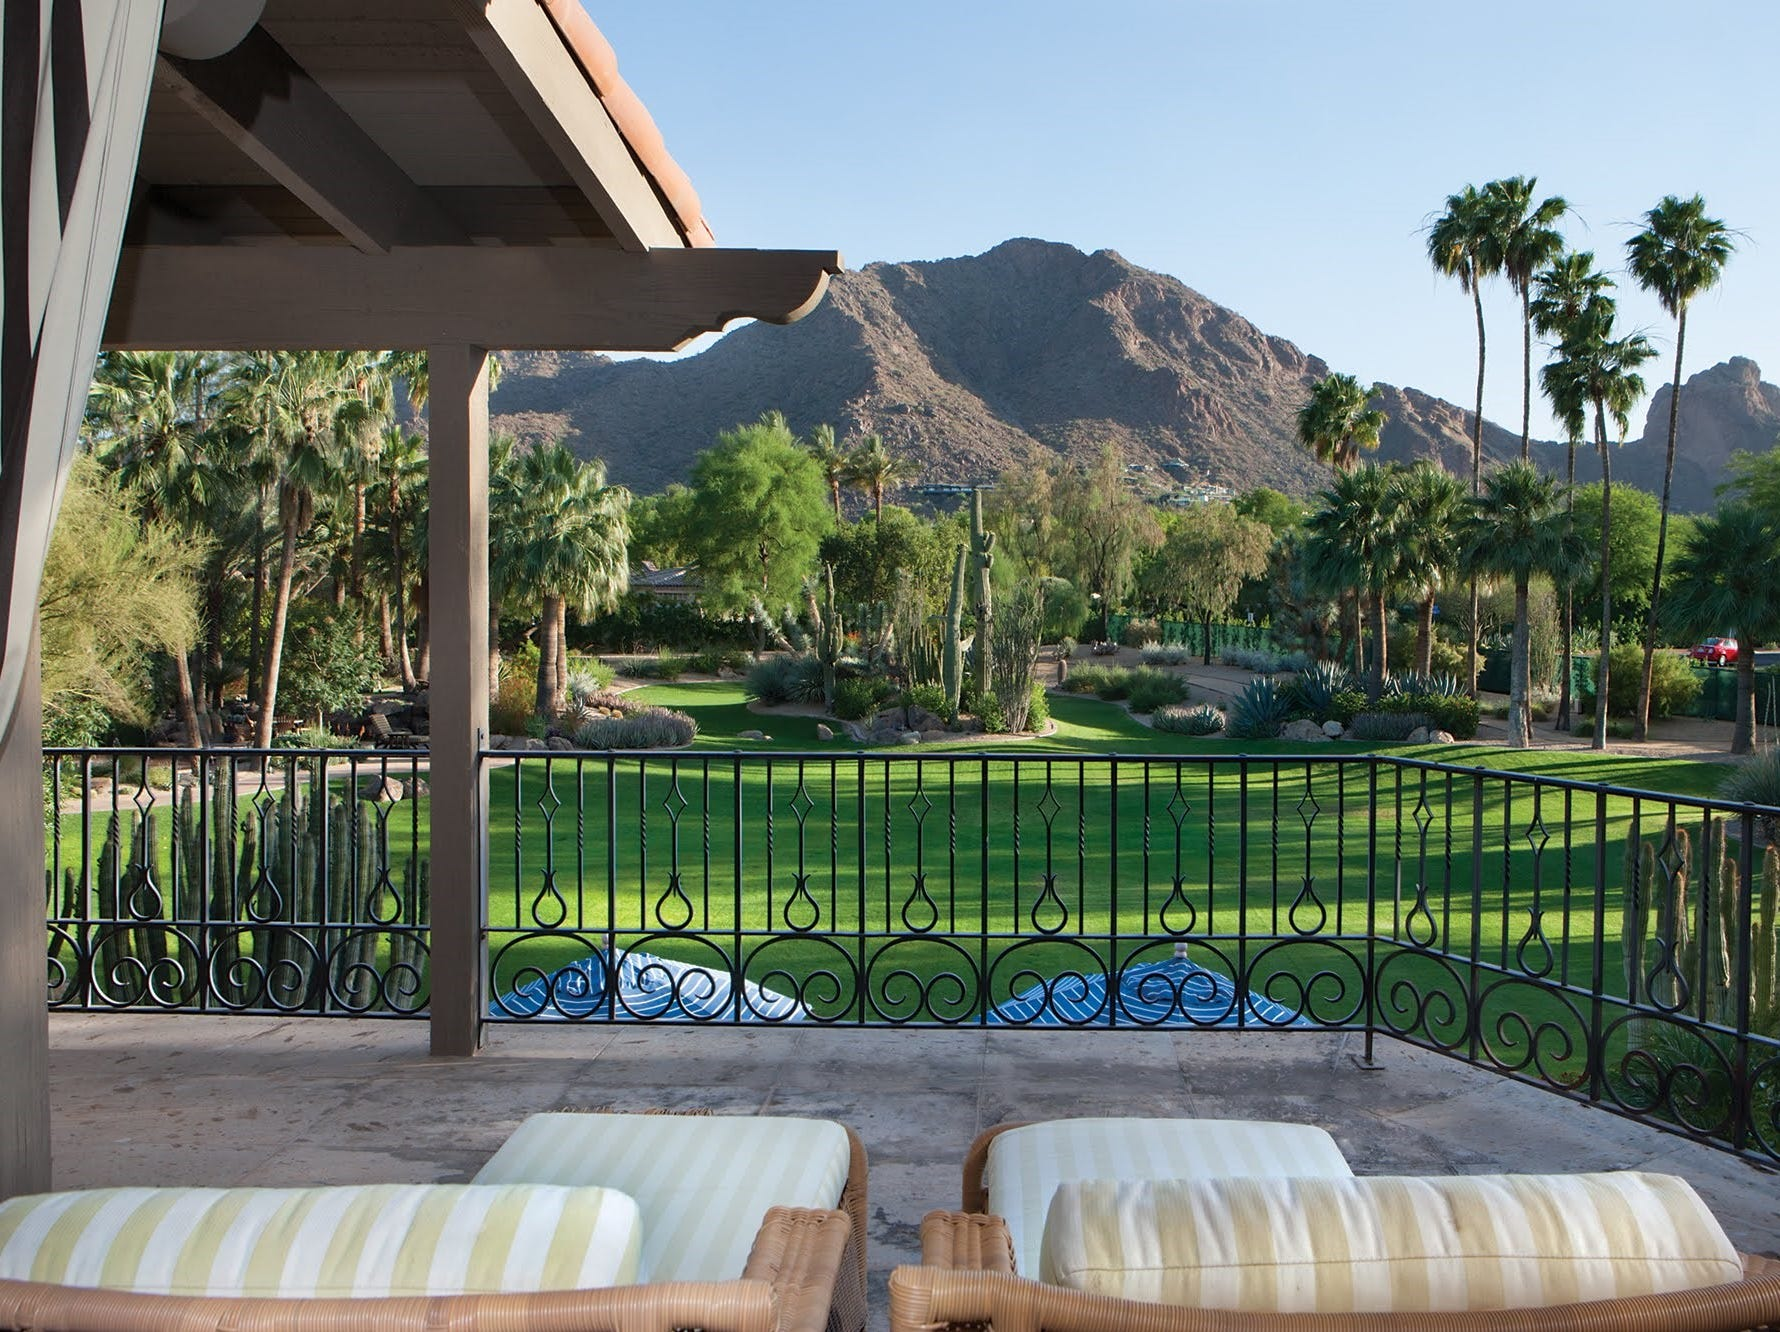 Casa de Arrow, LLC, purchased this mansion in Paradise Valley with unobstructed views of Camelback and Mummy Mountain.